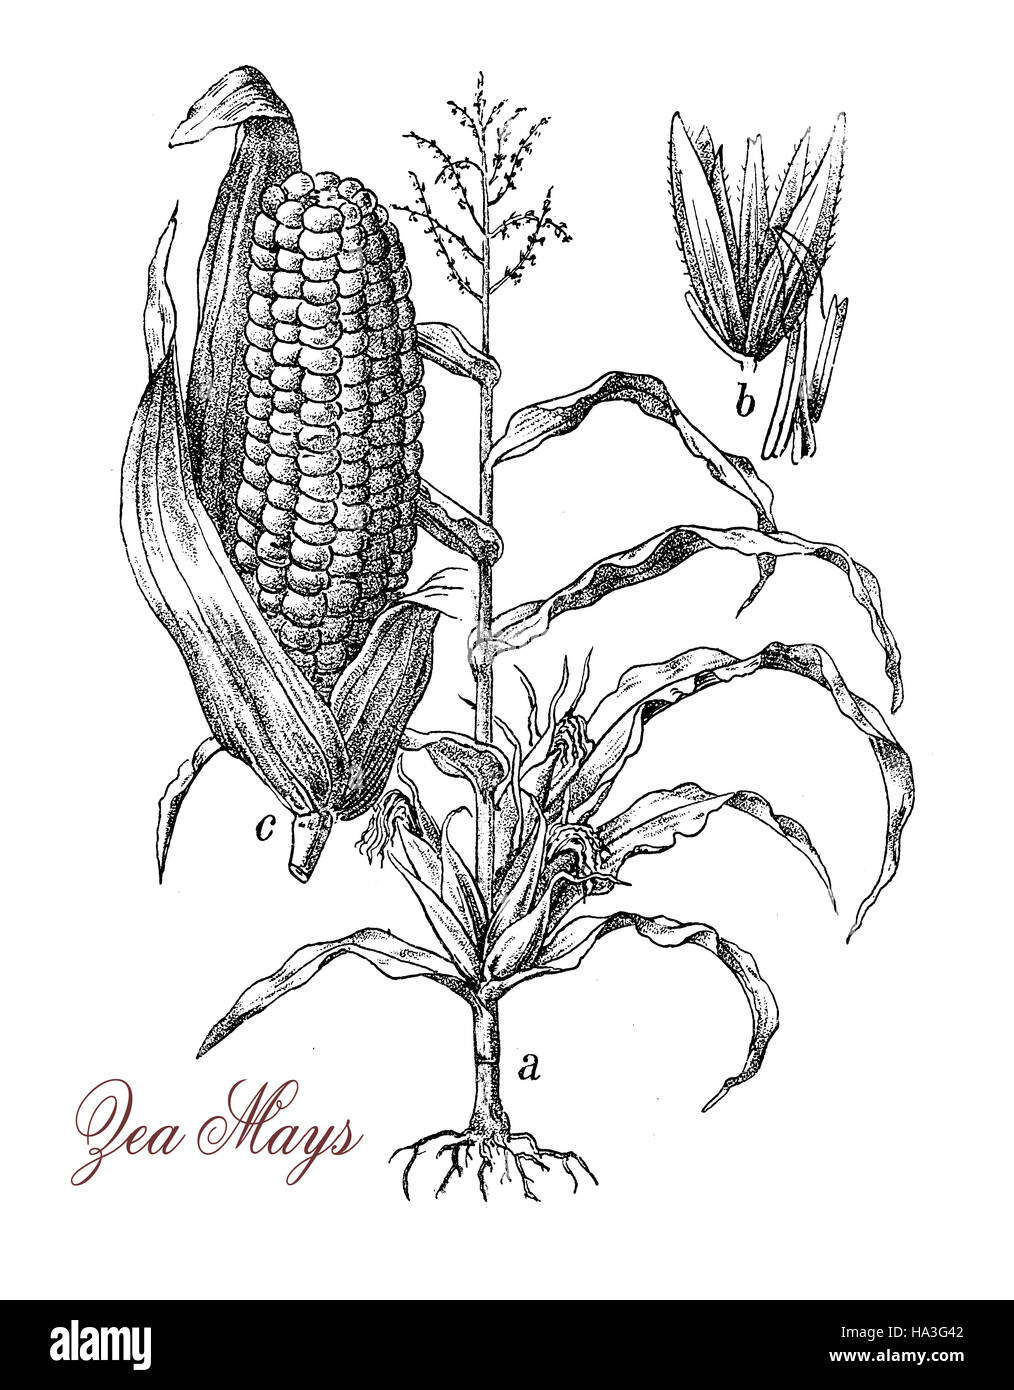 corn harvest history historical stock photos u0026 corn harvest